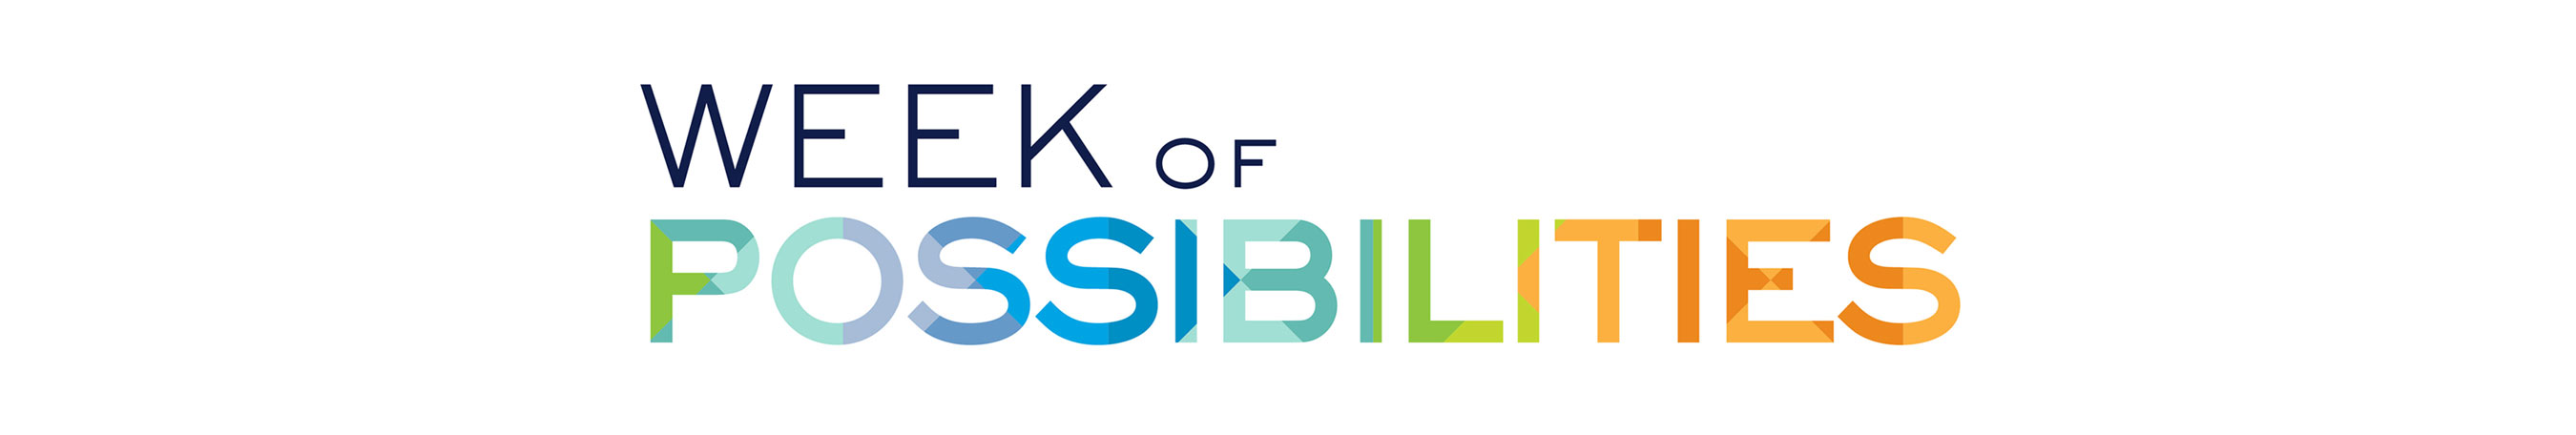 AbbVie's Week of Possibilities shows how #AbbVieGivesBack